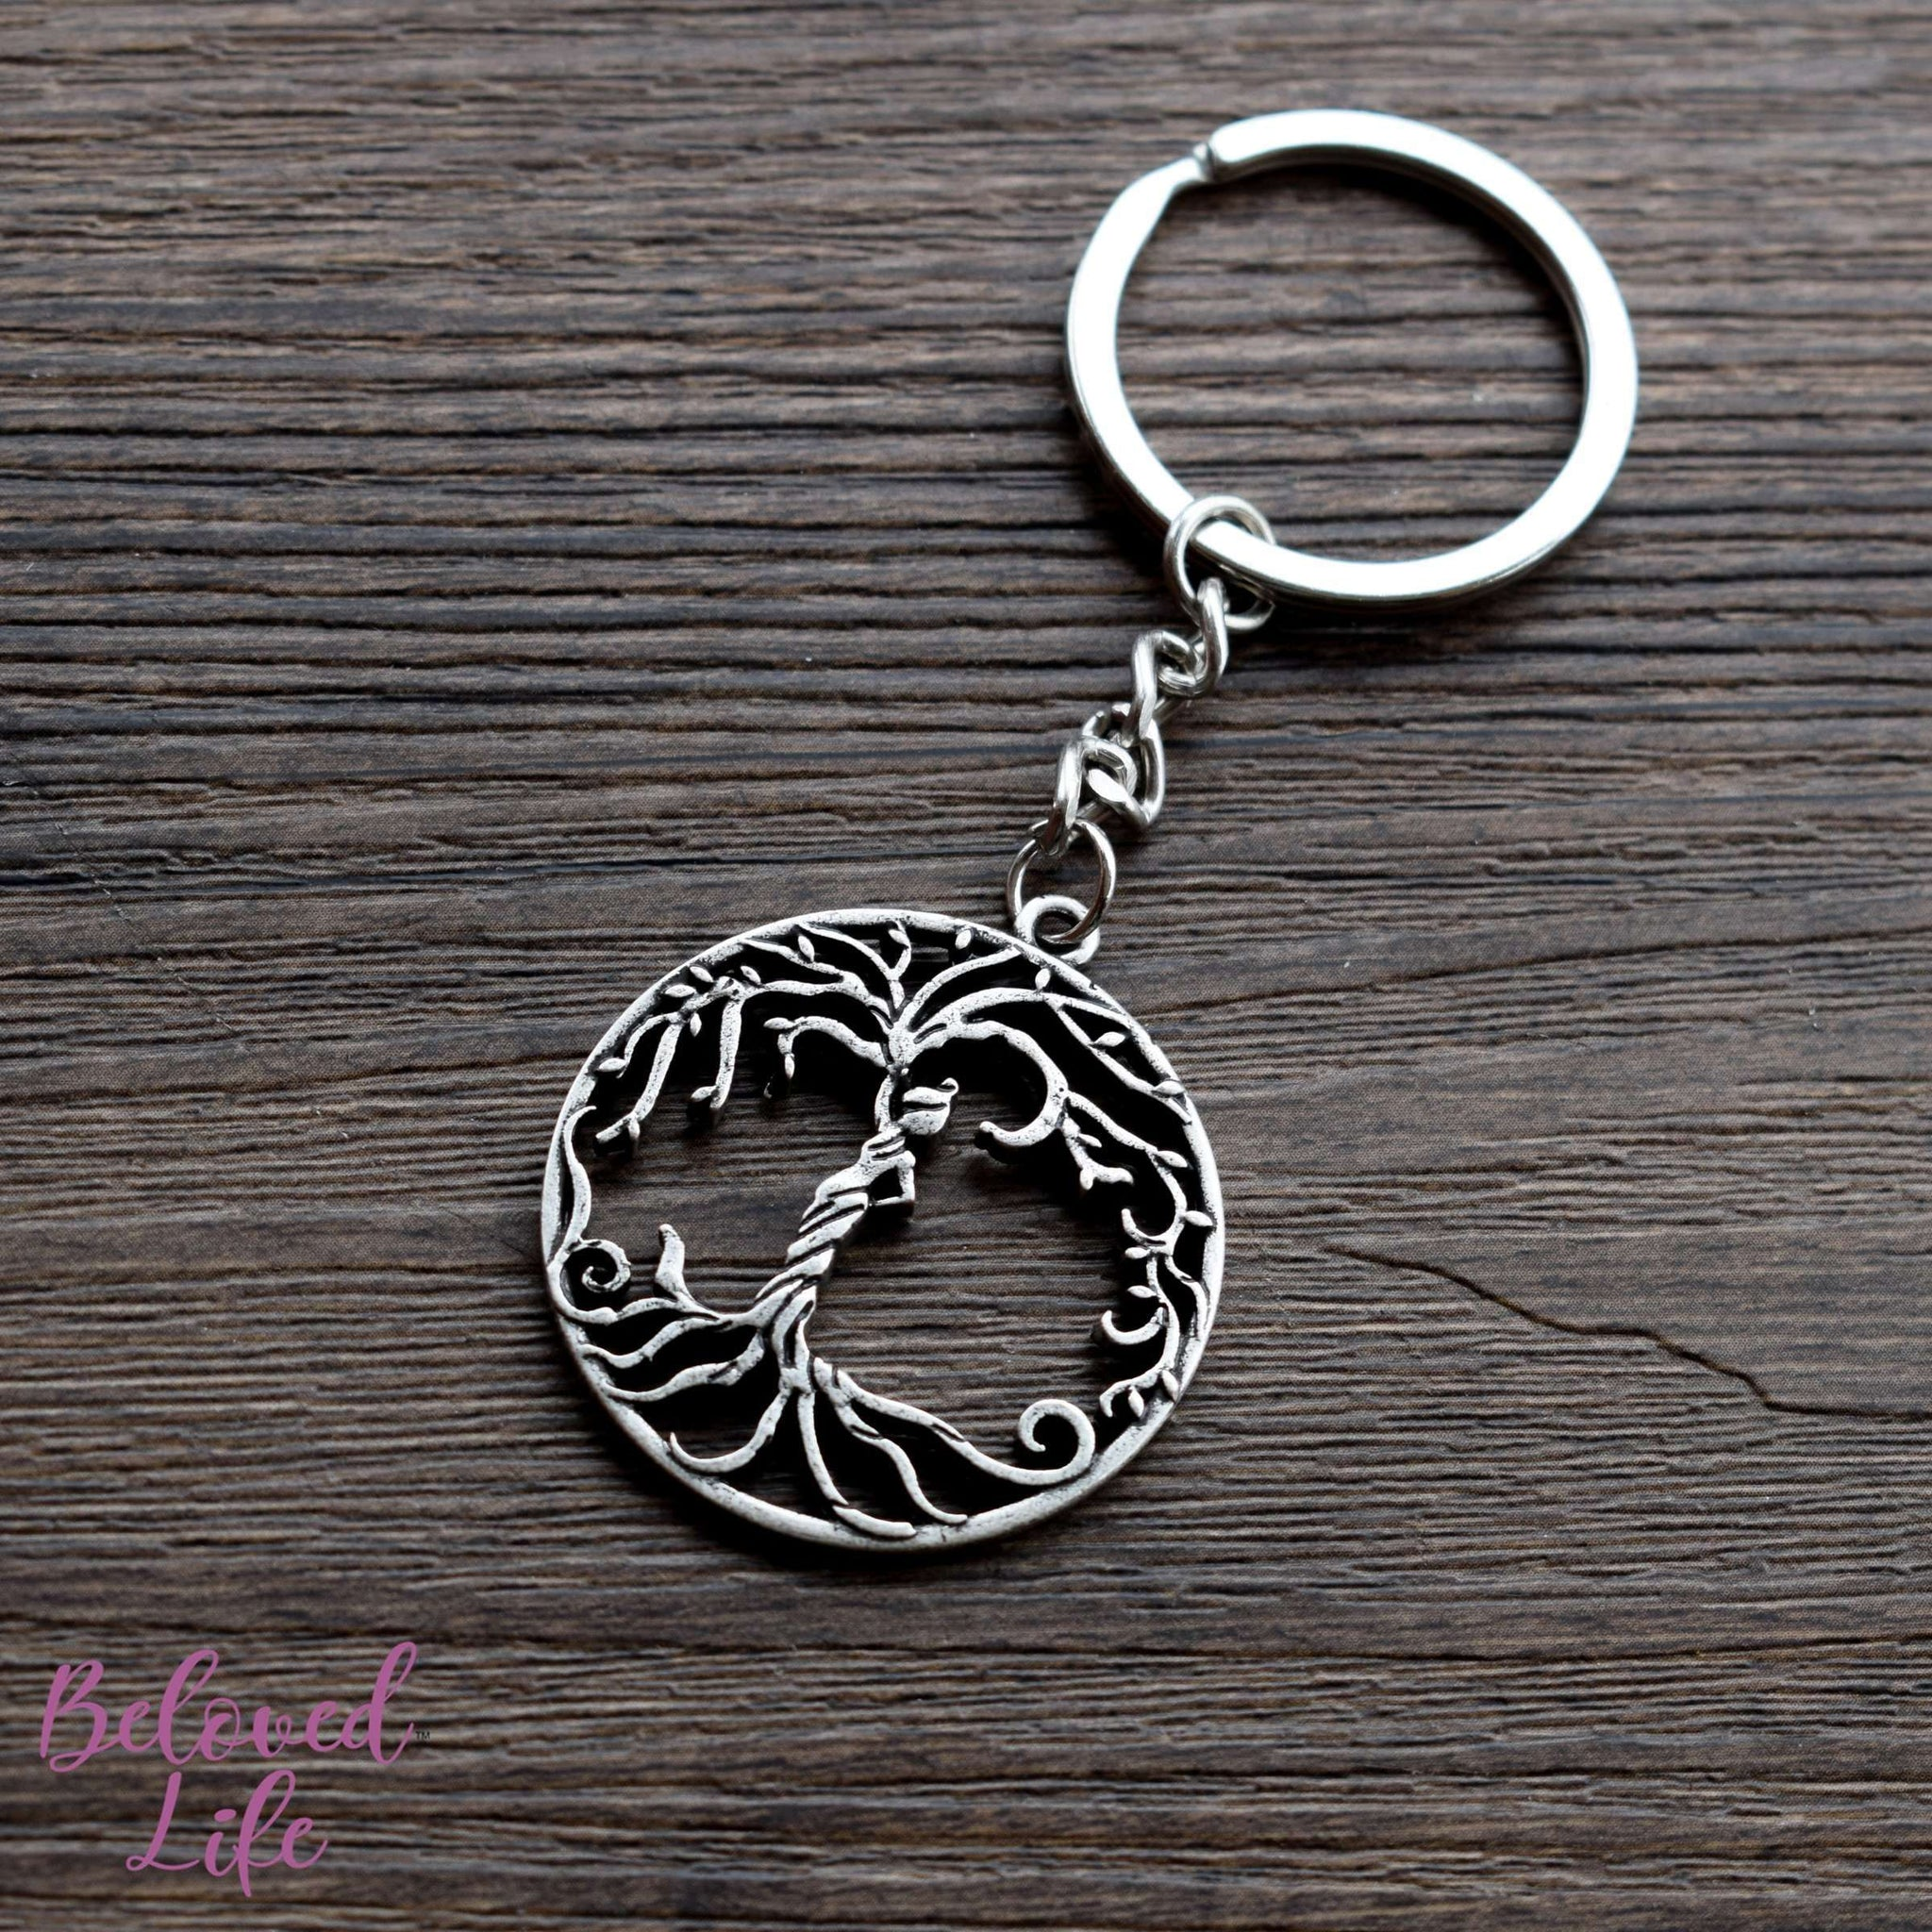 Beloved Life Jewelry: Woman 'Tree of Life' Hollowed-Out Pendant Keychain [Antique Silver]